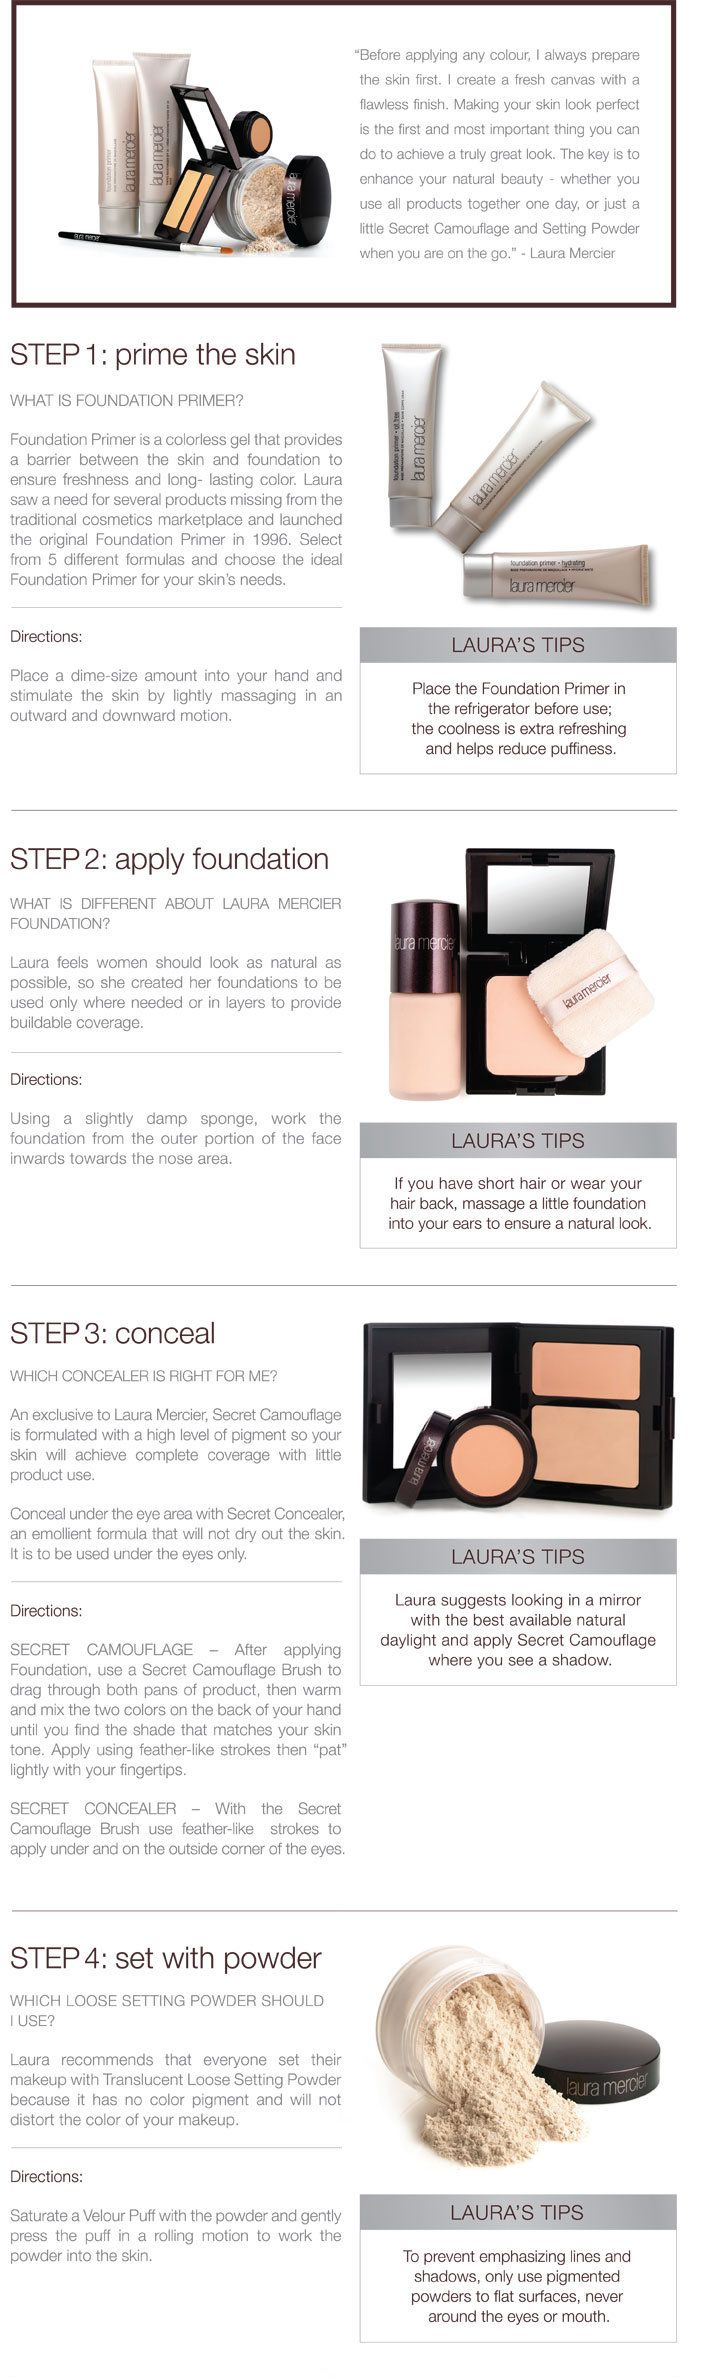 the flawless face (laura mercier) - I LOVE LM makeup. especially the crème foundations... :) Highly recommend!